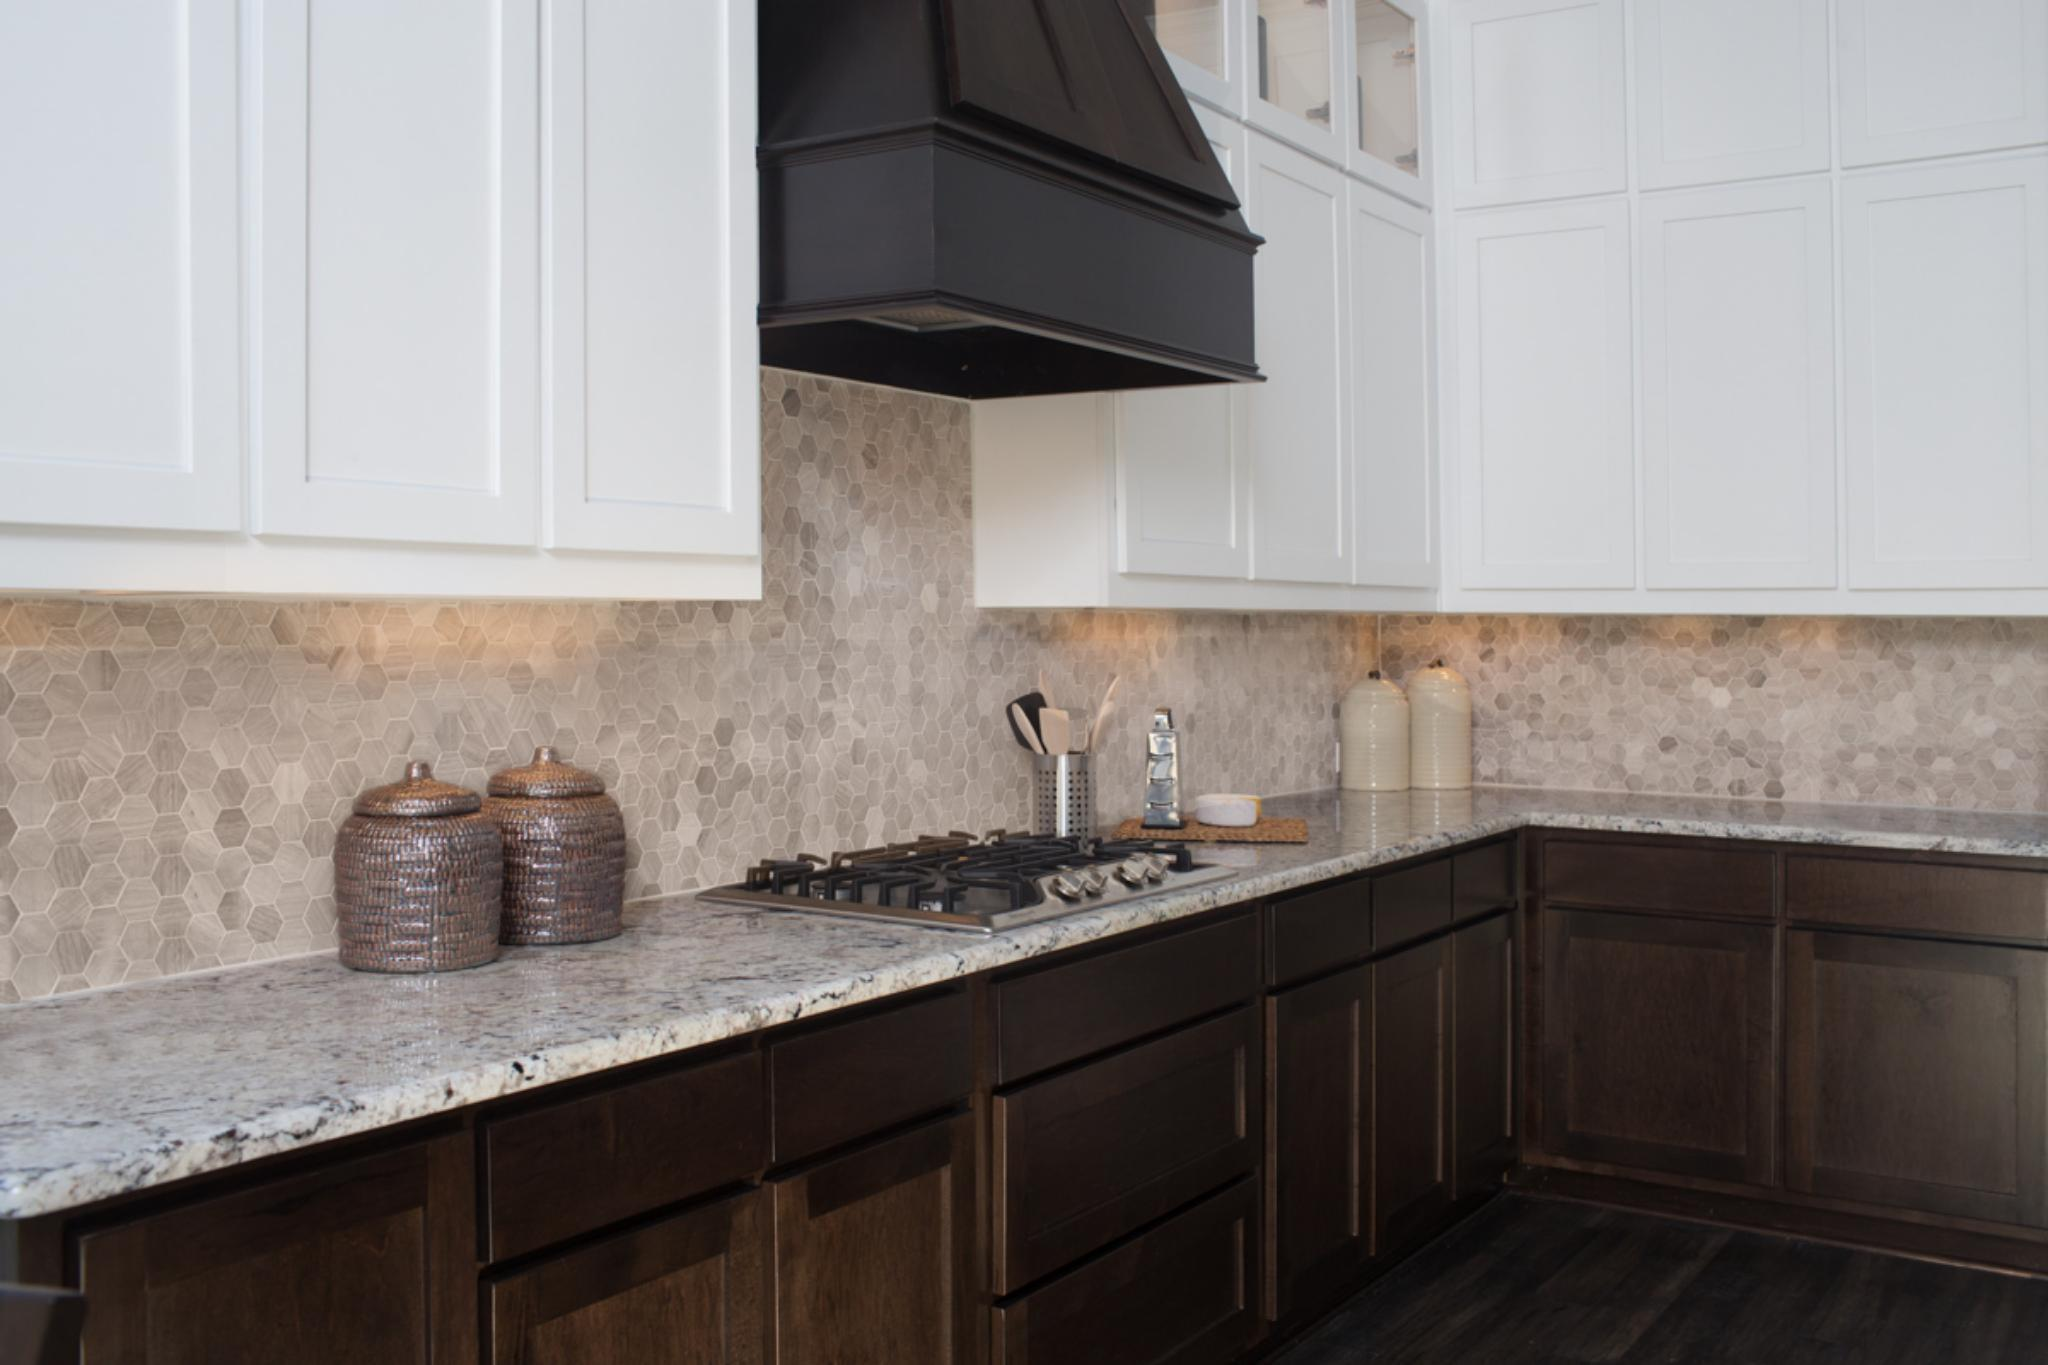 Kitchen featured in the Addison II By Trendmaker Homes in Dallas, TX